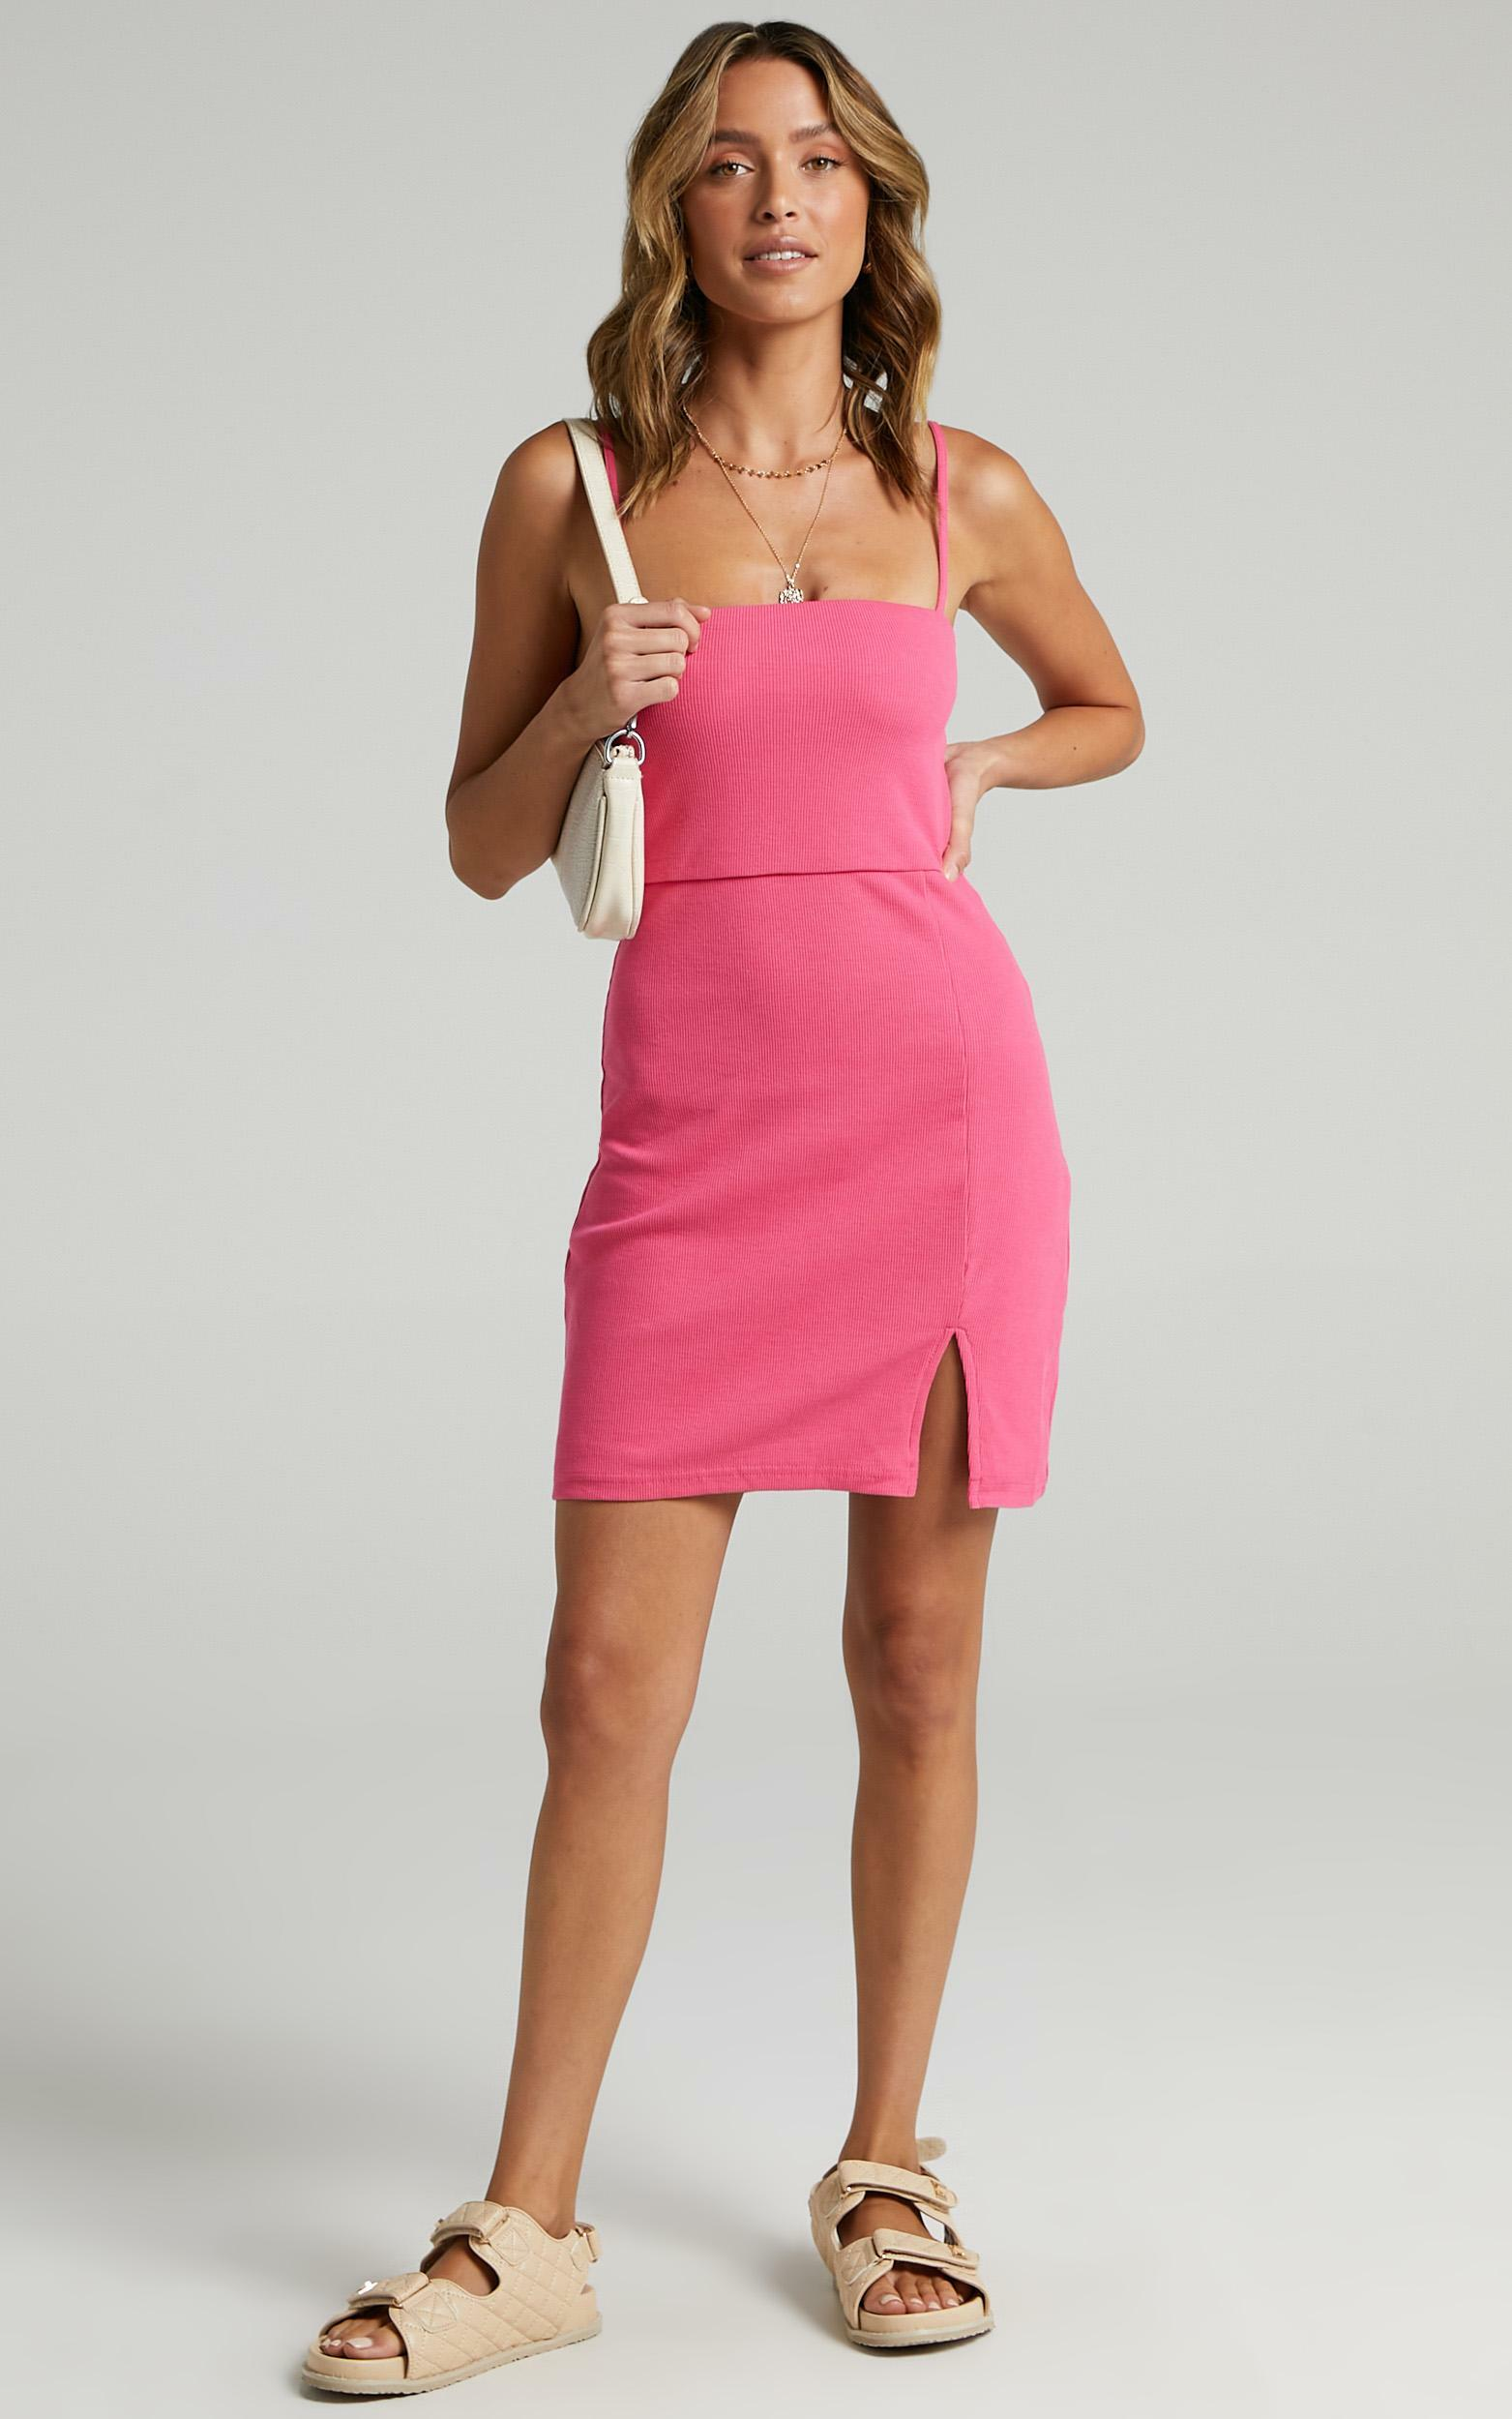 Island Babe Dress in Hot Pink - 6 (XS), PNK11, hi-res image number null